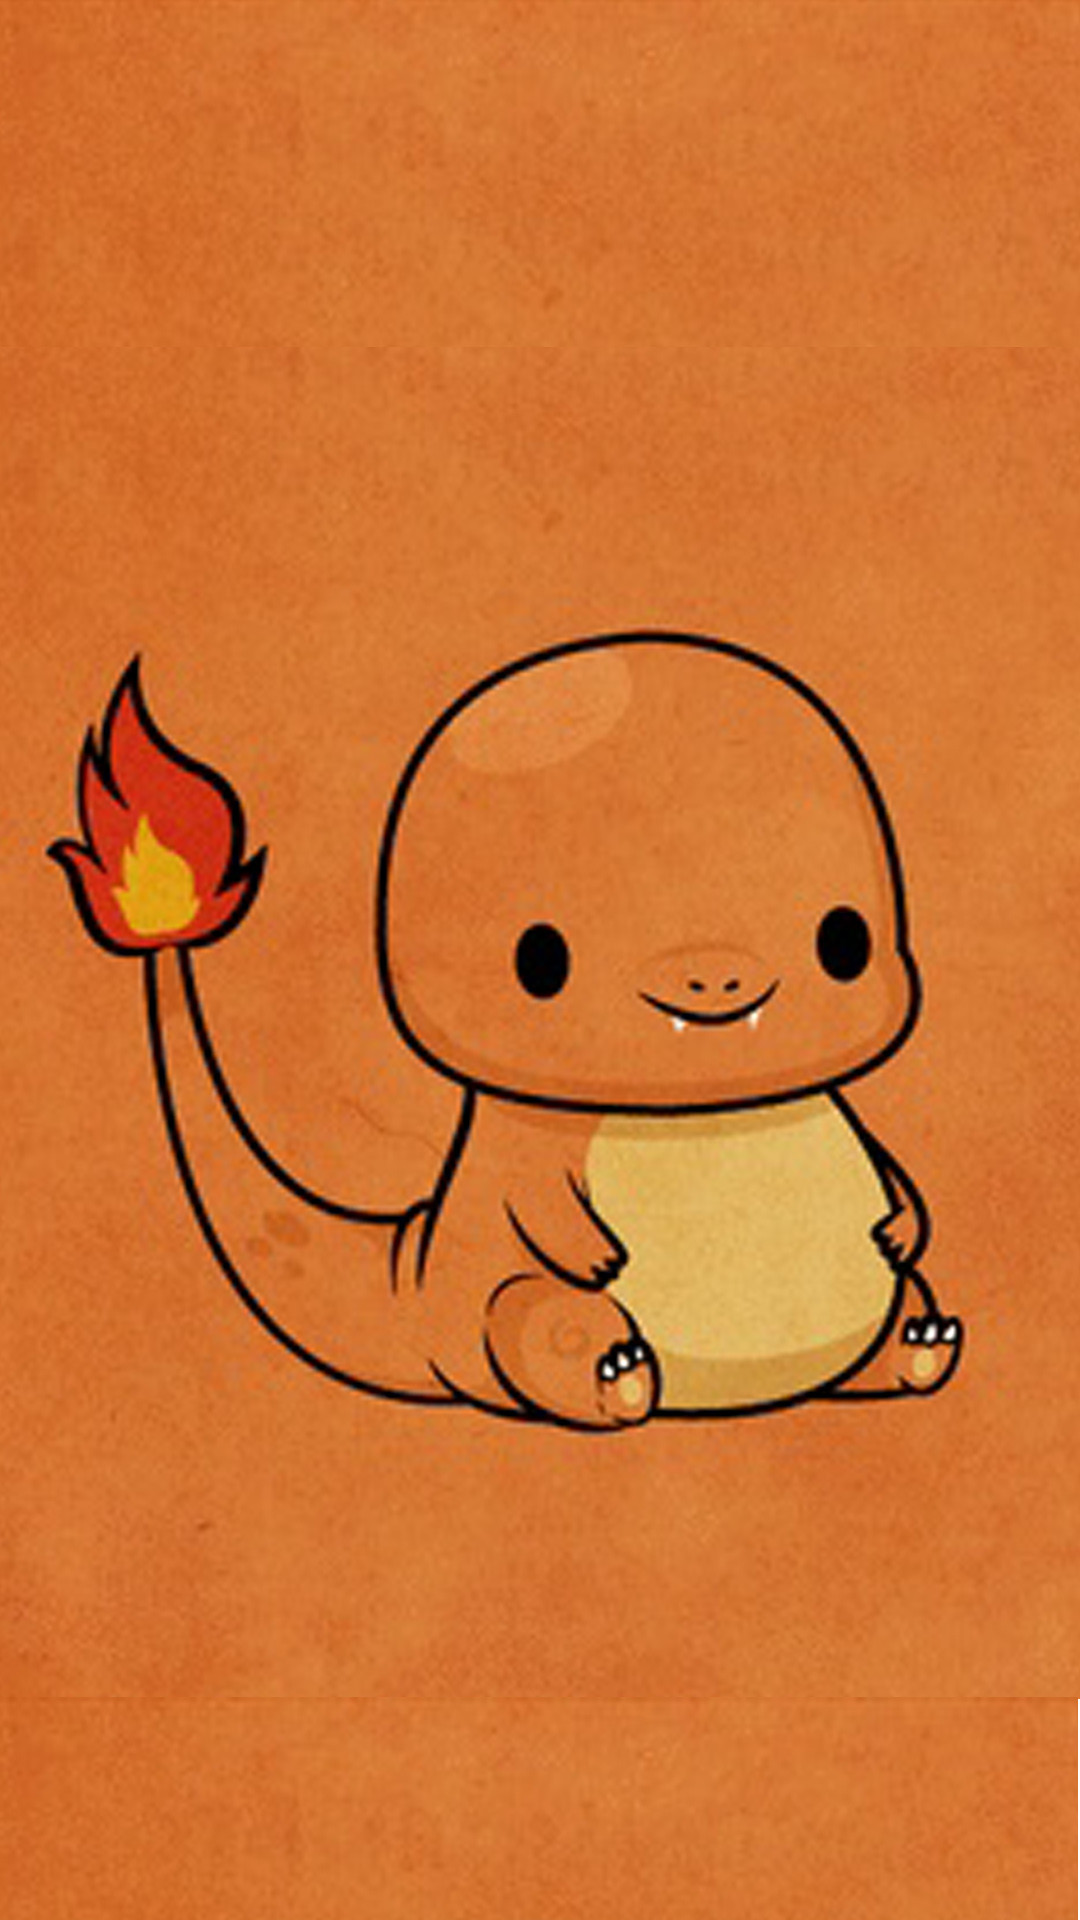 charmander wallpaper hd 76 images